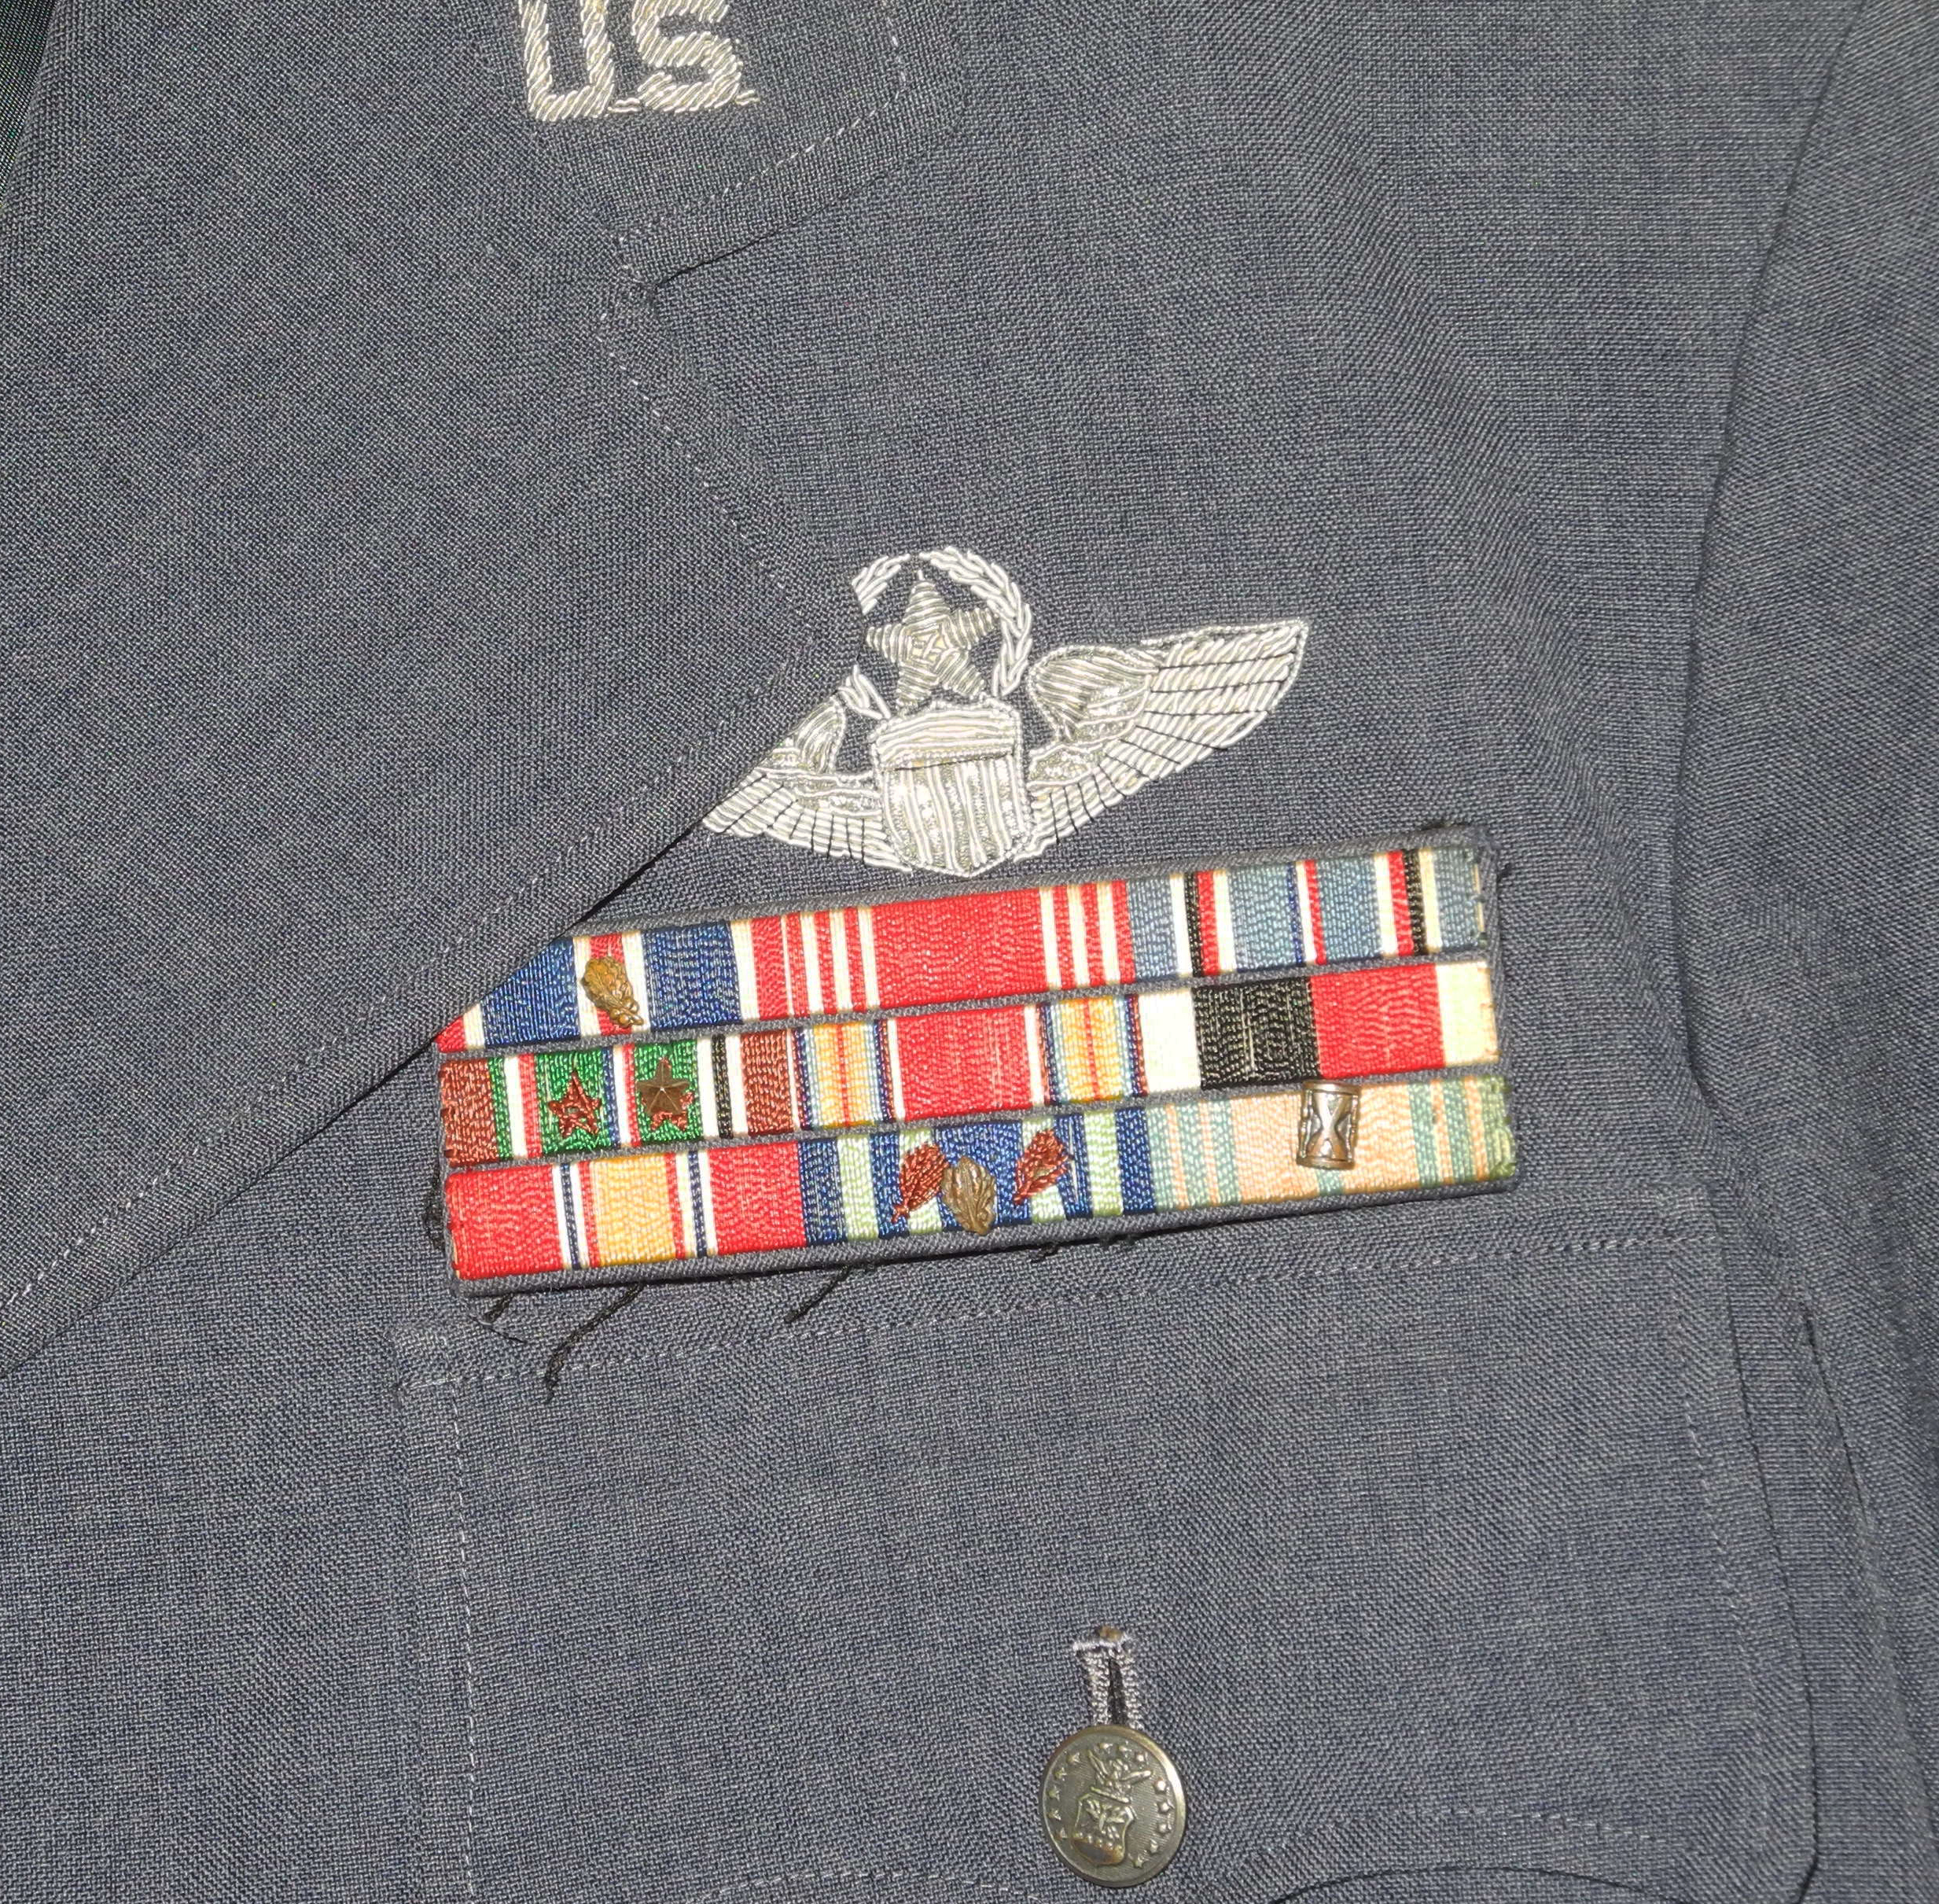 USAF Brigadier General's uniform jacket named and dated 1961